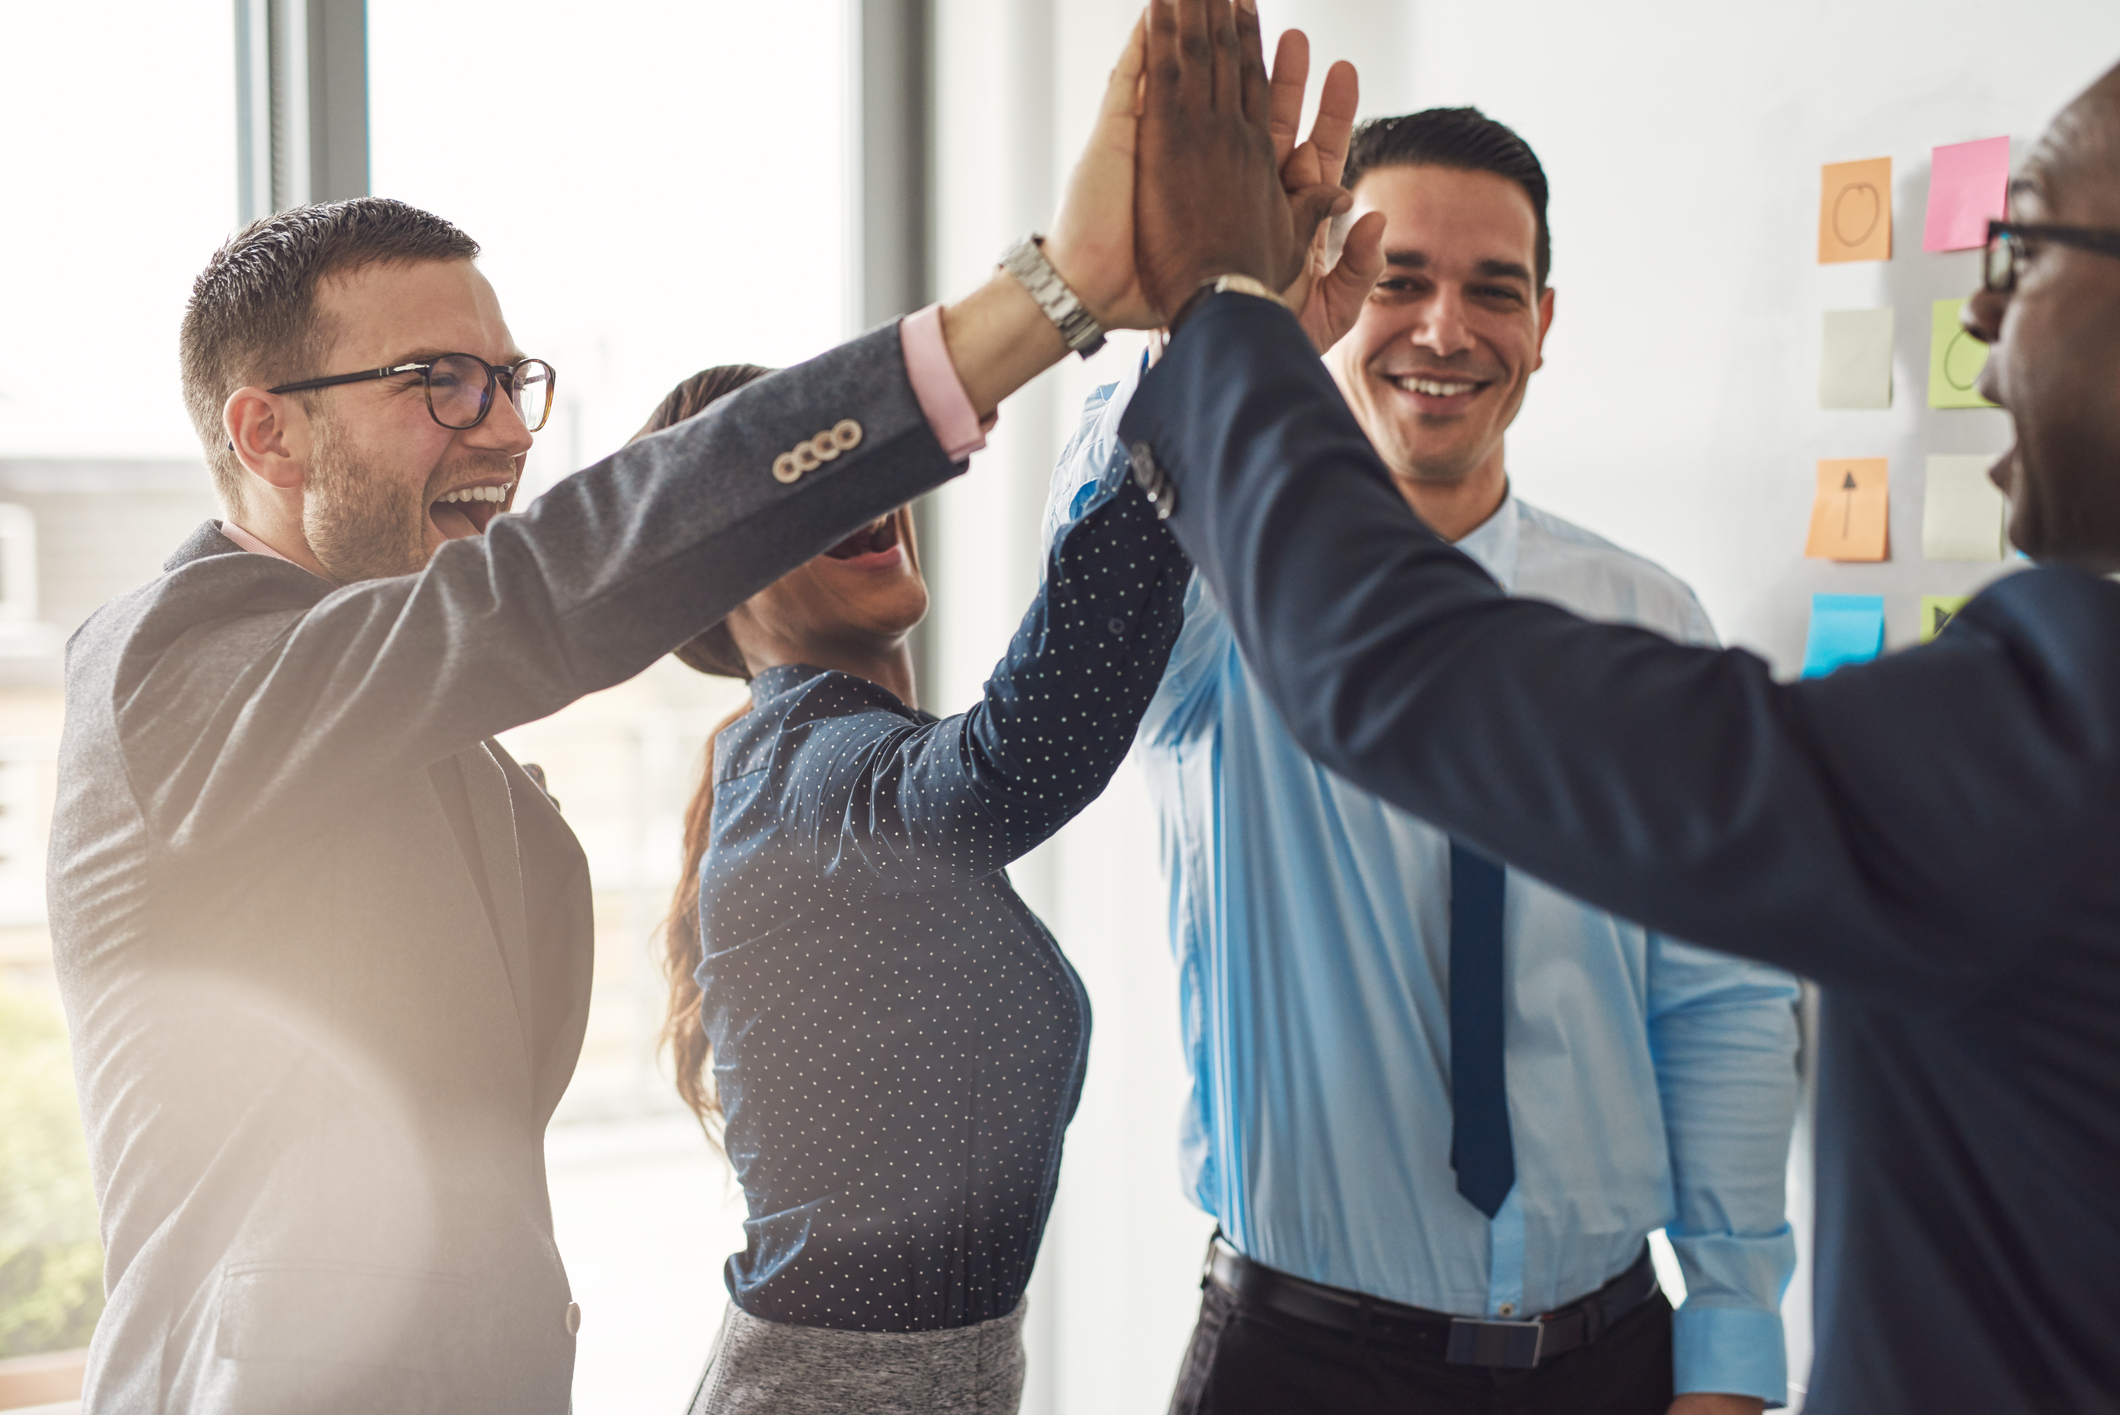 management and leadership development - We design and deliver development programs for individuals, leaders, and teams that focus on enhancing performance and achieving goals.Find out more